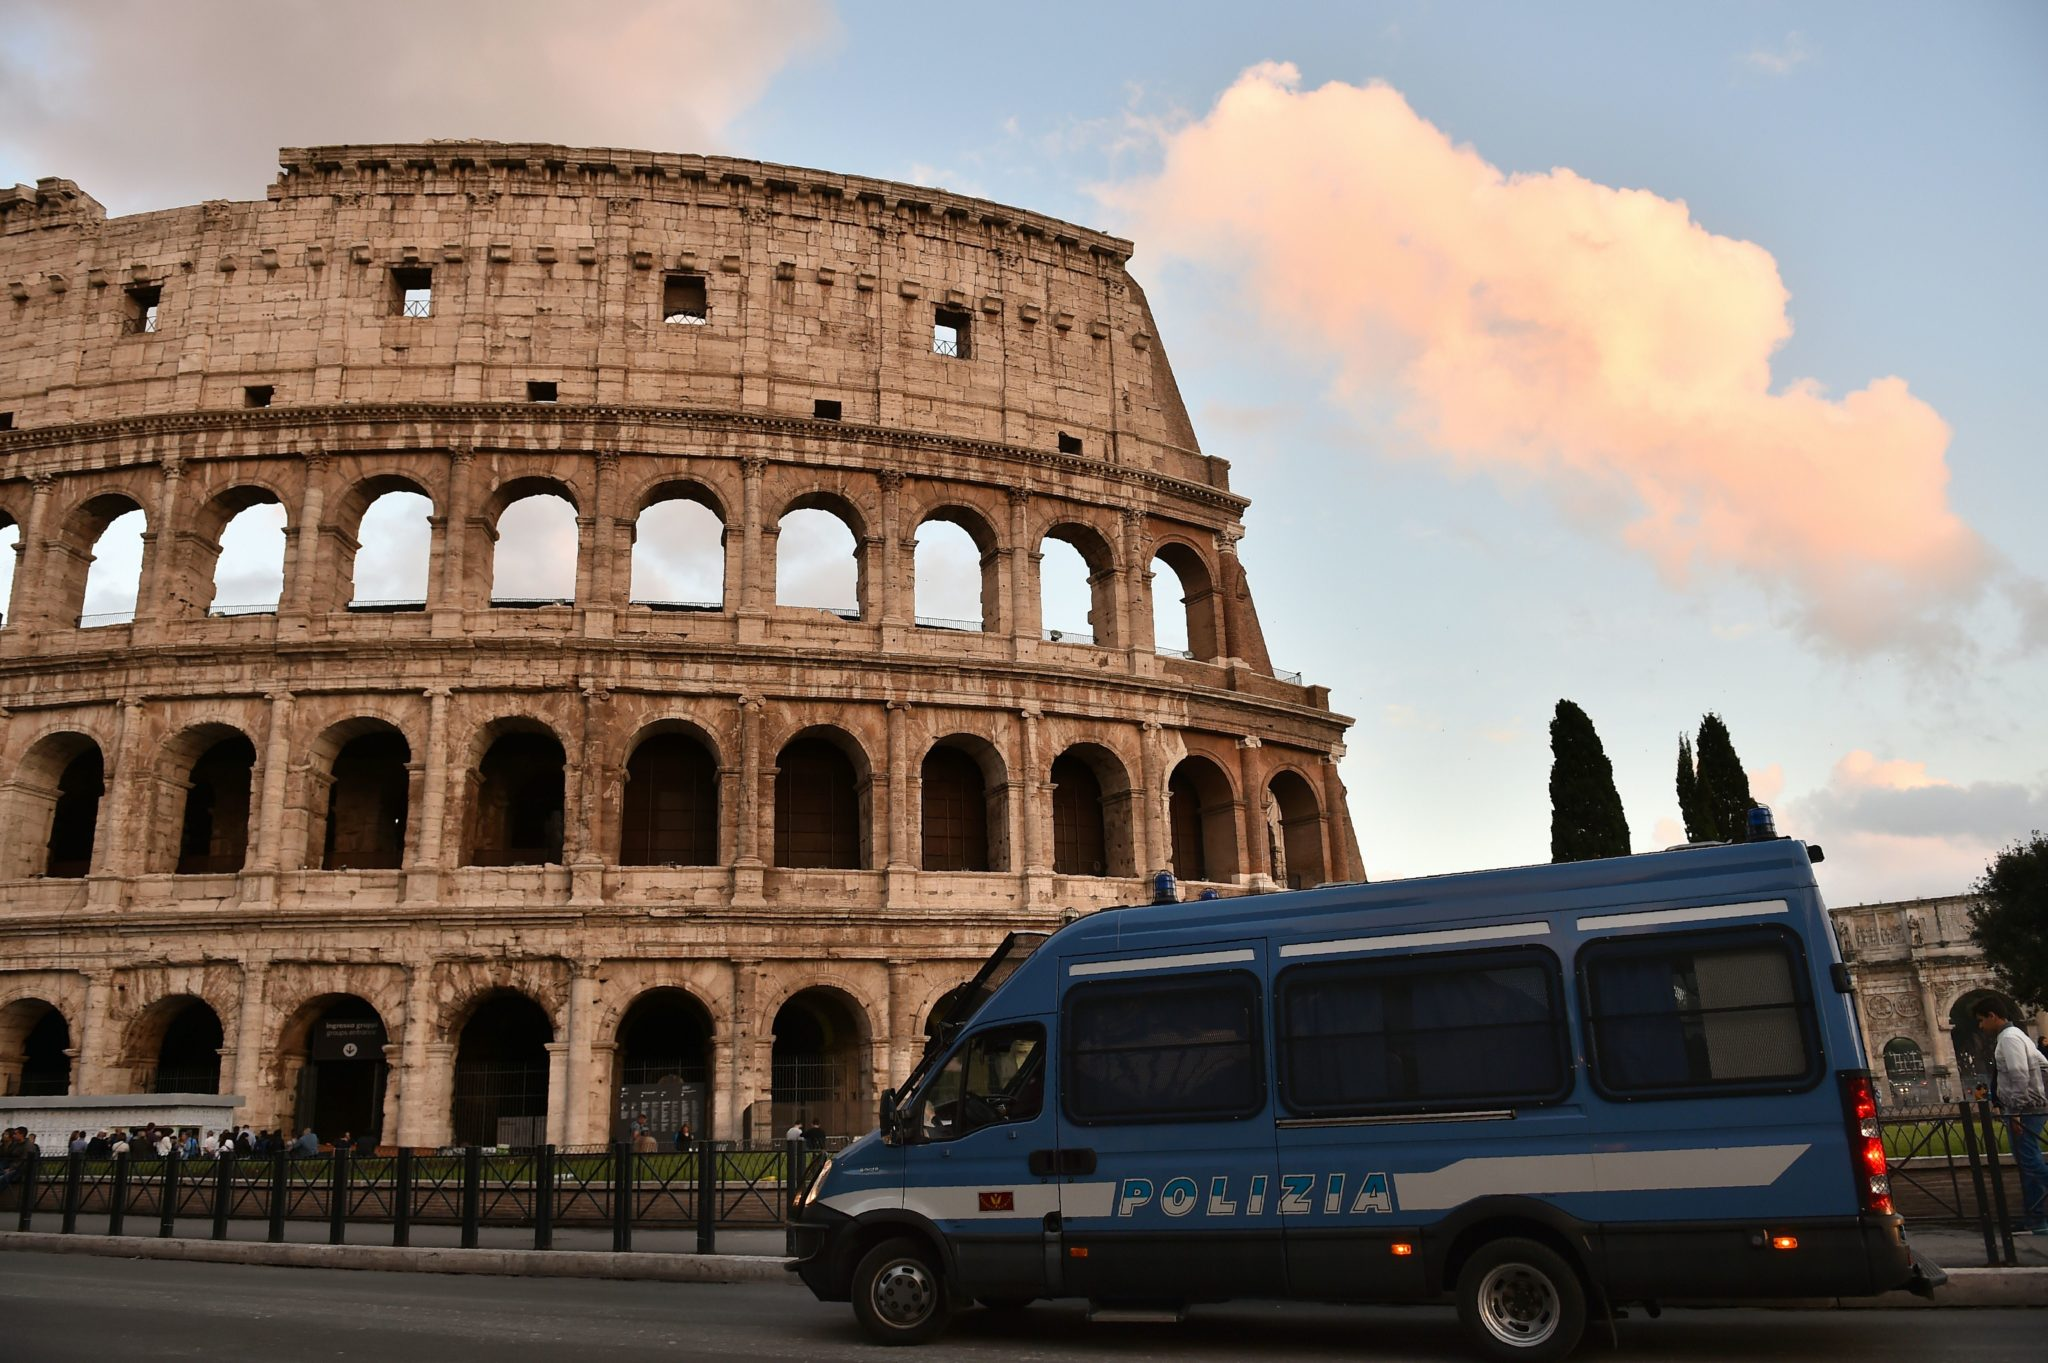 This photo taken on May 12, 2016 in Rome shows an Italian police van stationed outside of the Colosseum